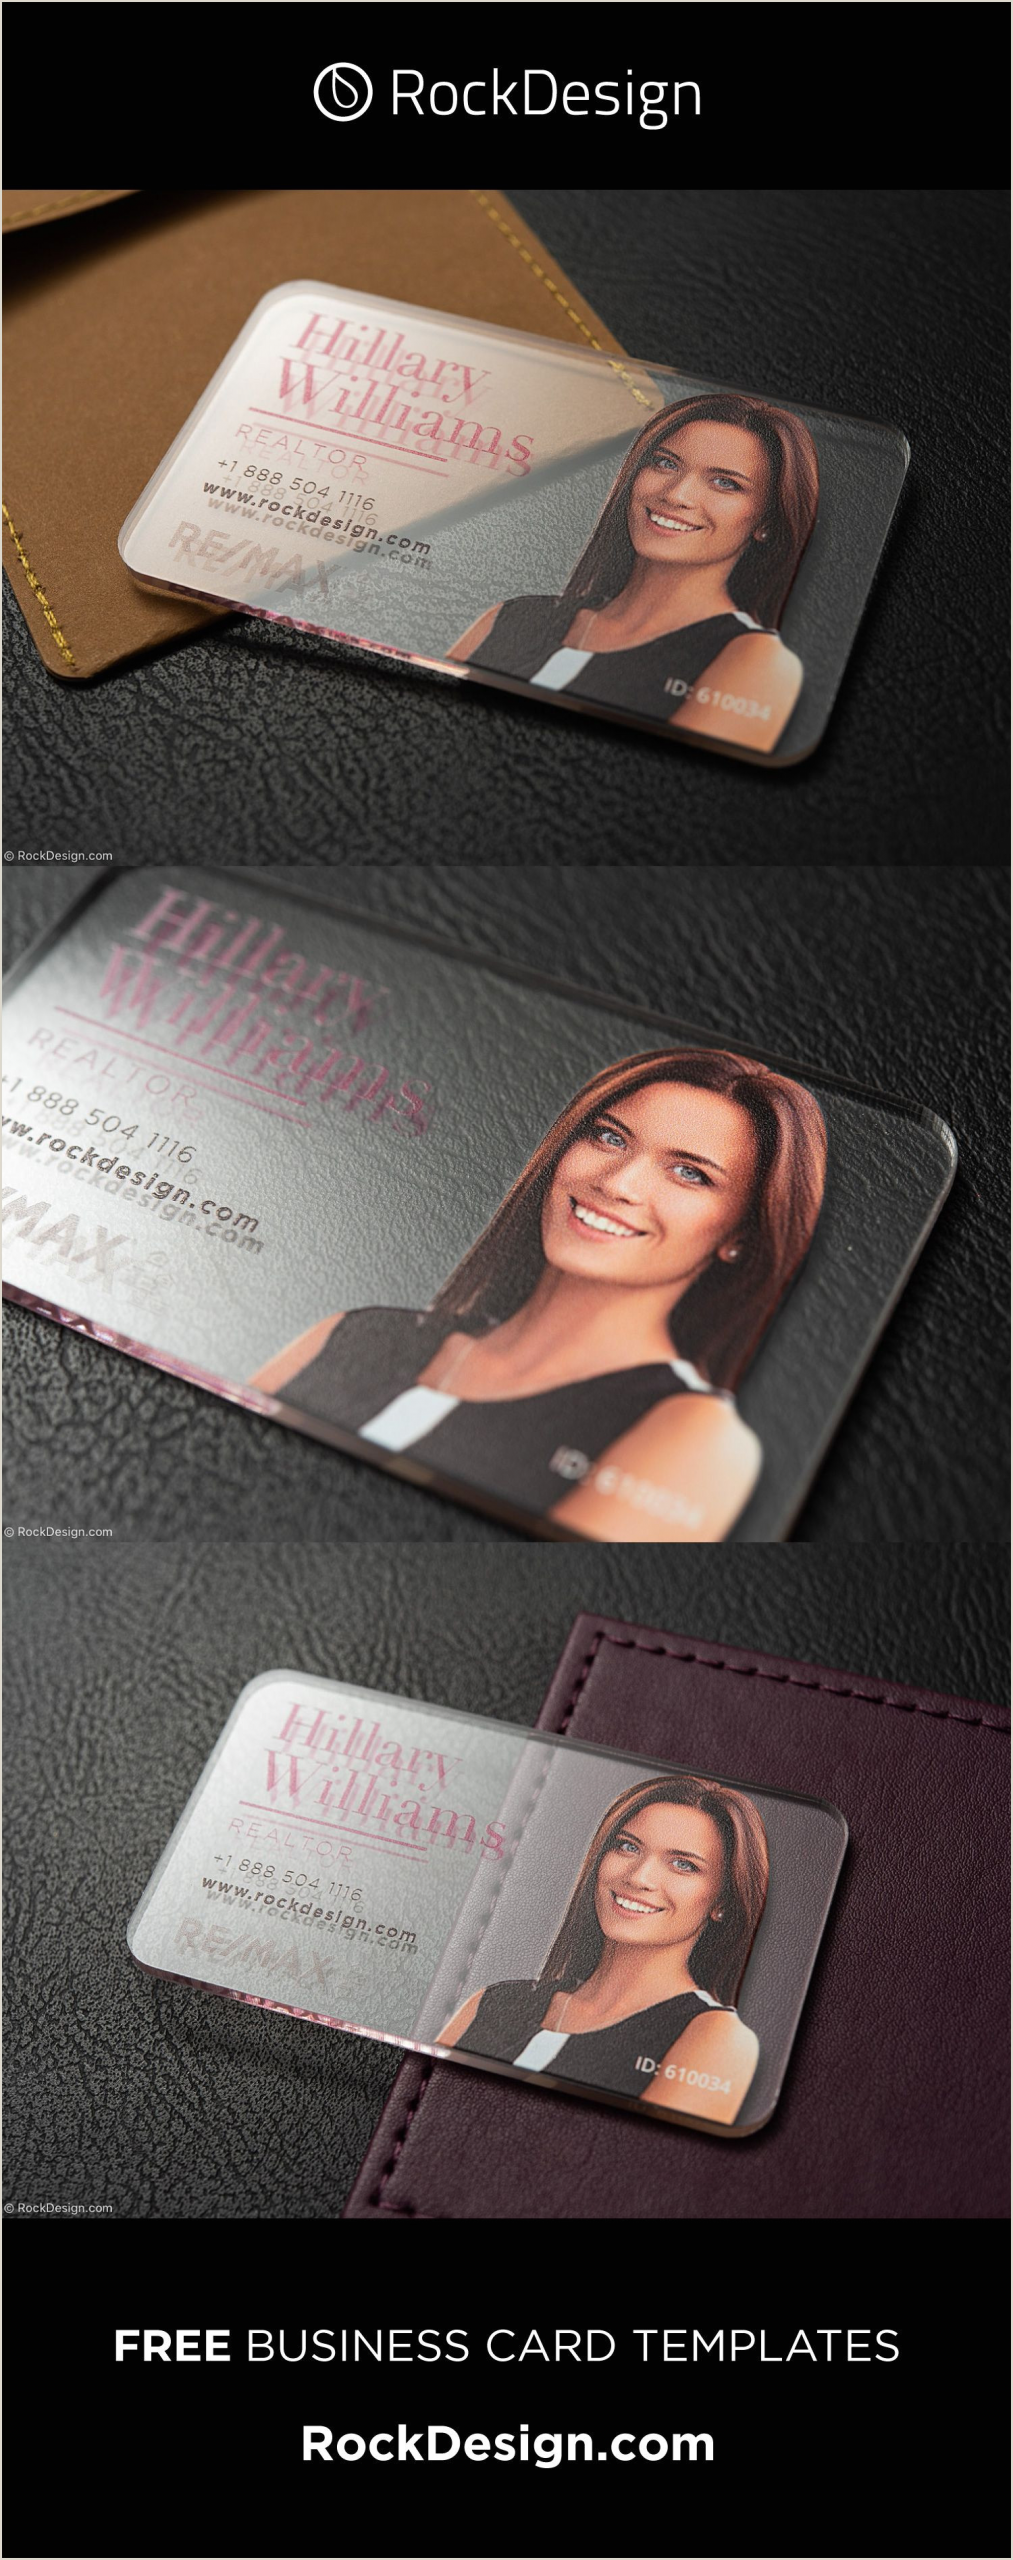 Unique Images Of Raised Realtor Business Cards Realtor Printed Acrylic Business Card Template Design